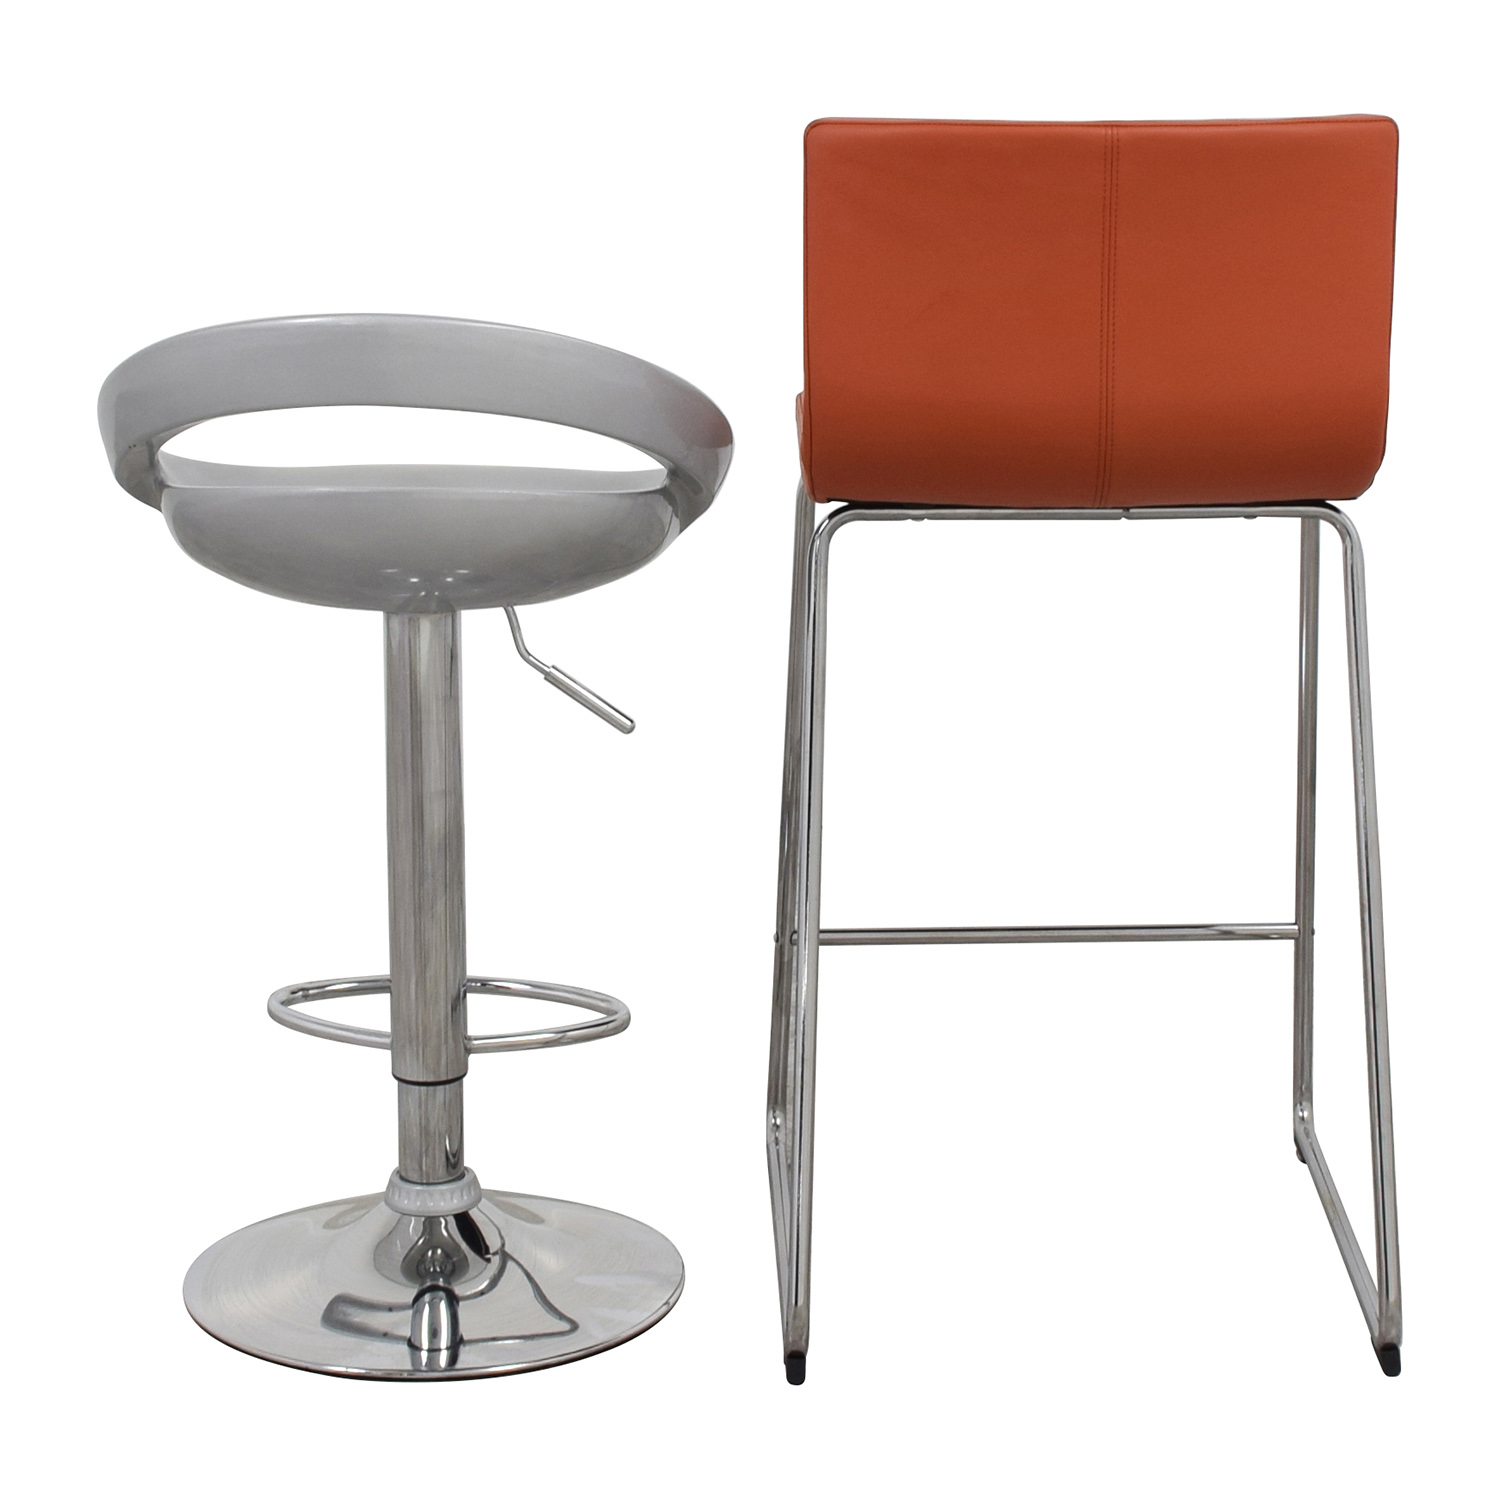 Pair of Modern Orange and Silver Bar Stools for sale